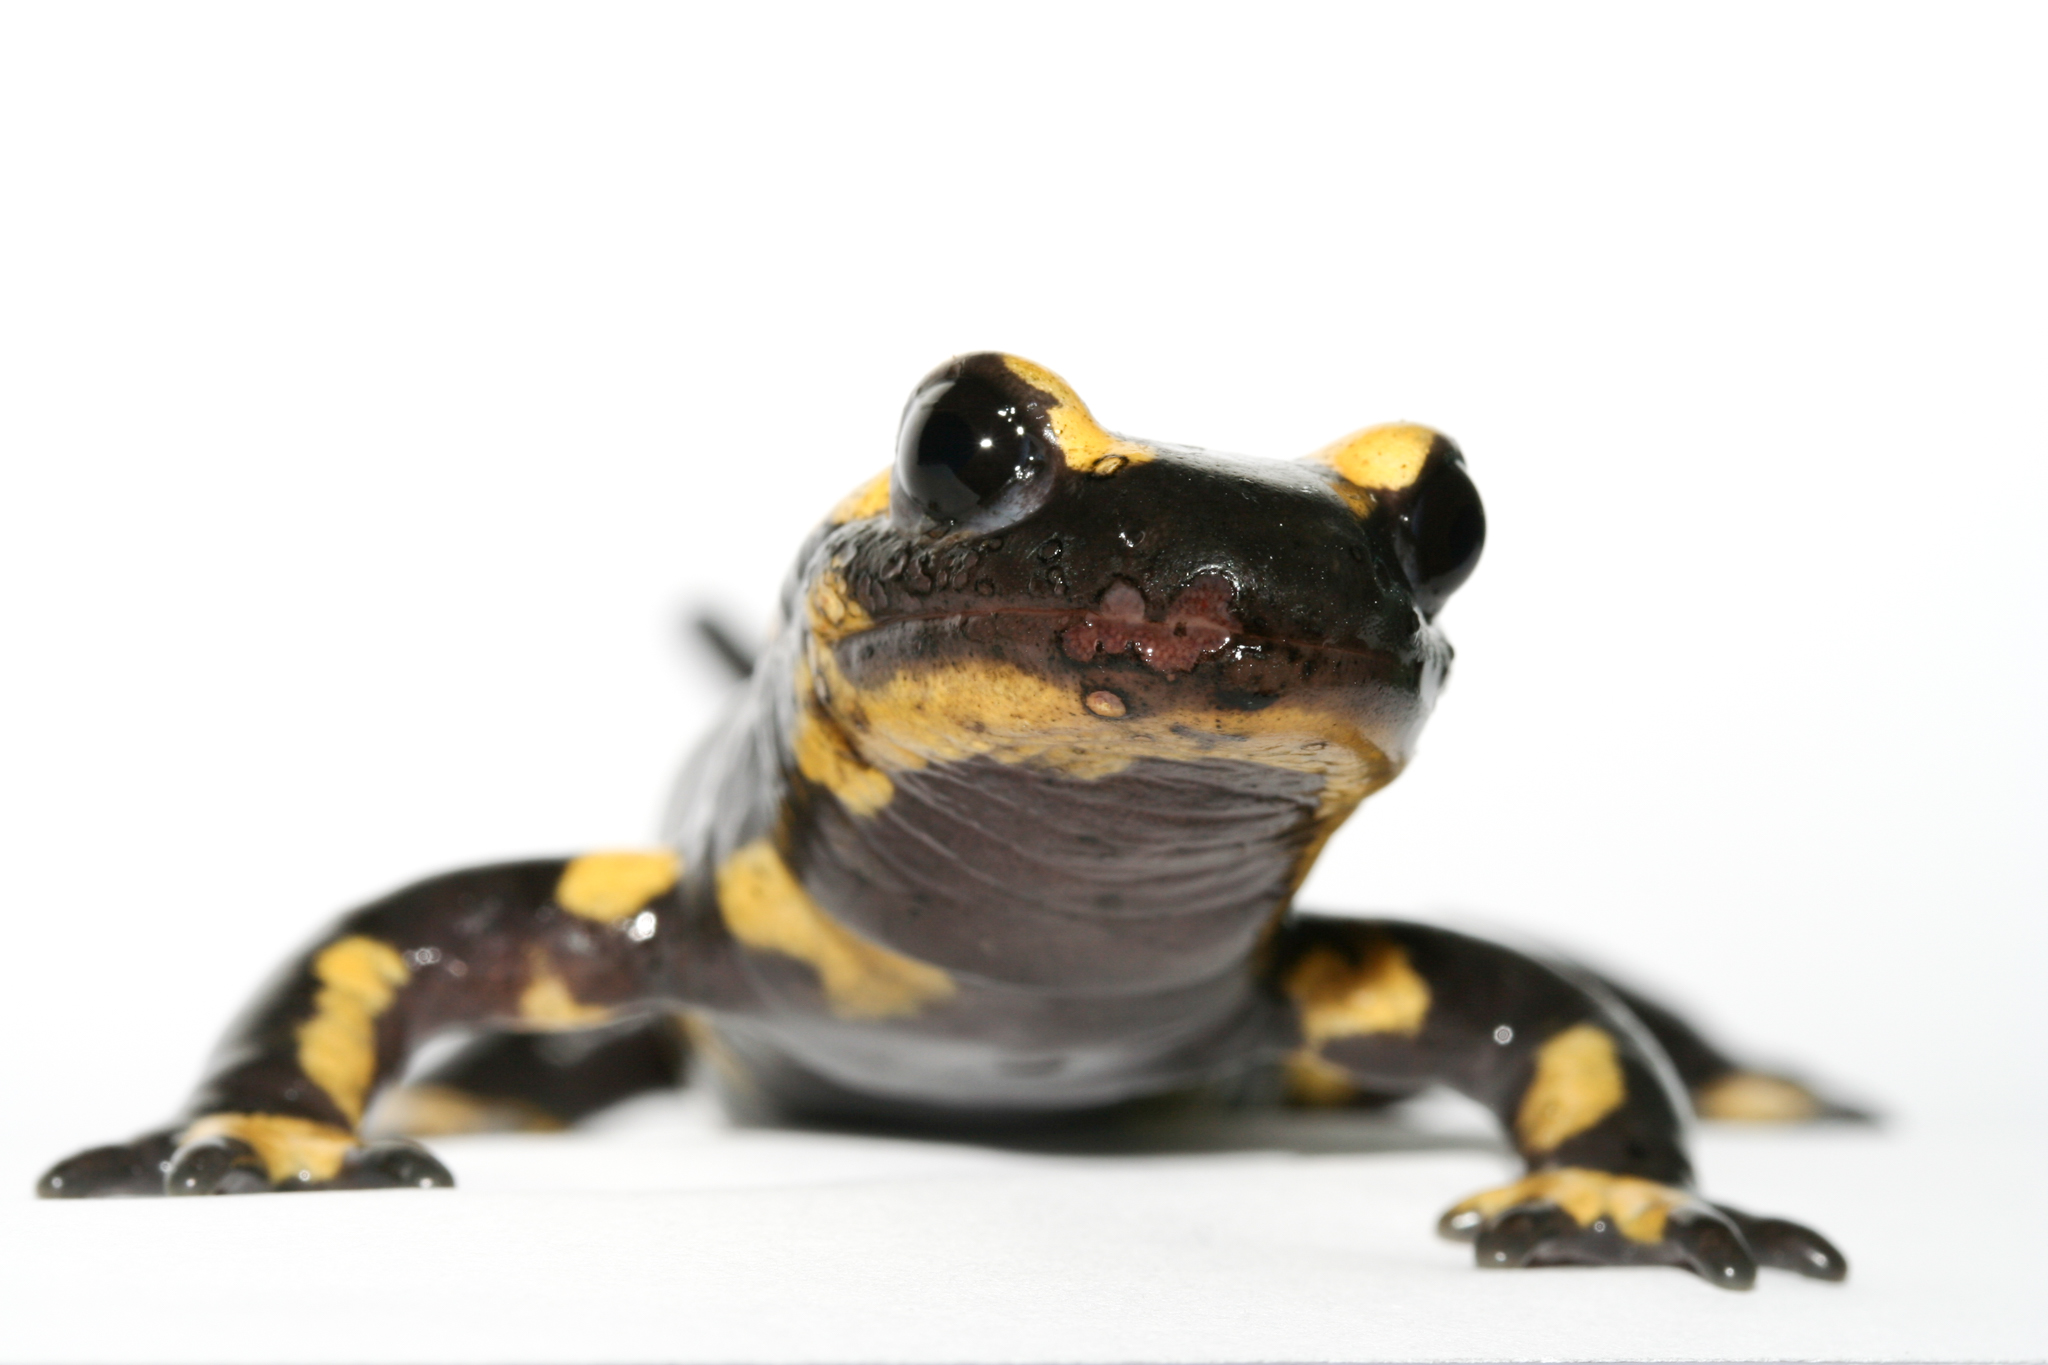 Bsal lesions are visible on the snout of this fire salamander. Photograph by An Martel